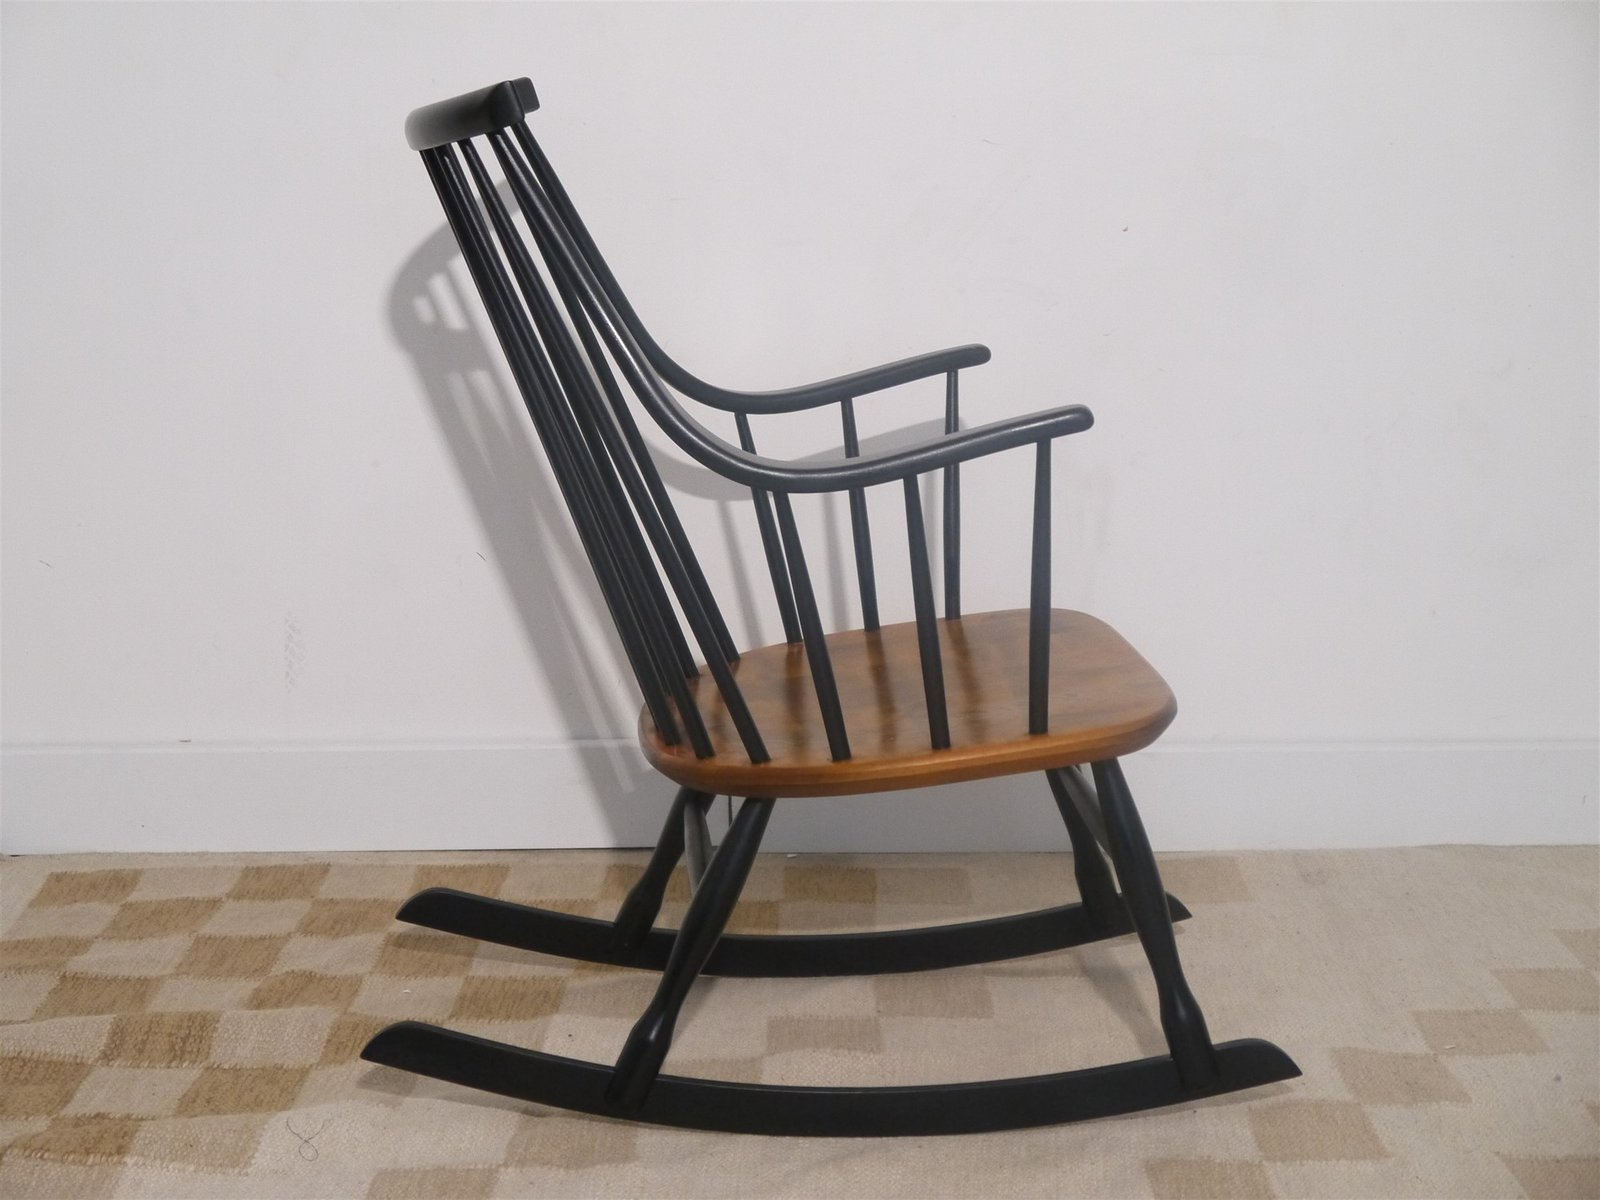 vintage rocking chair by lena larsson for nesto for sale at pamono. Black Bedroom Furniture Sets. Home Design Ideas